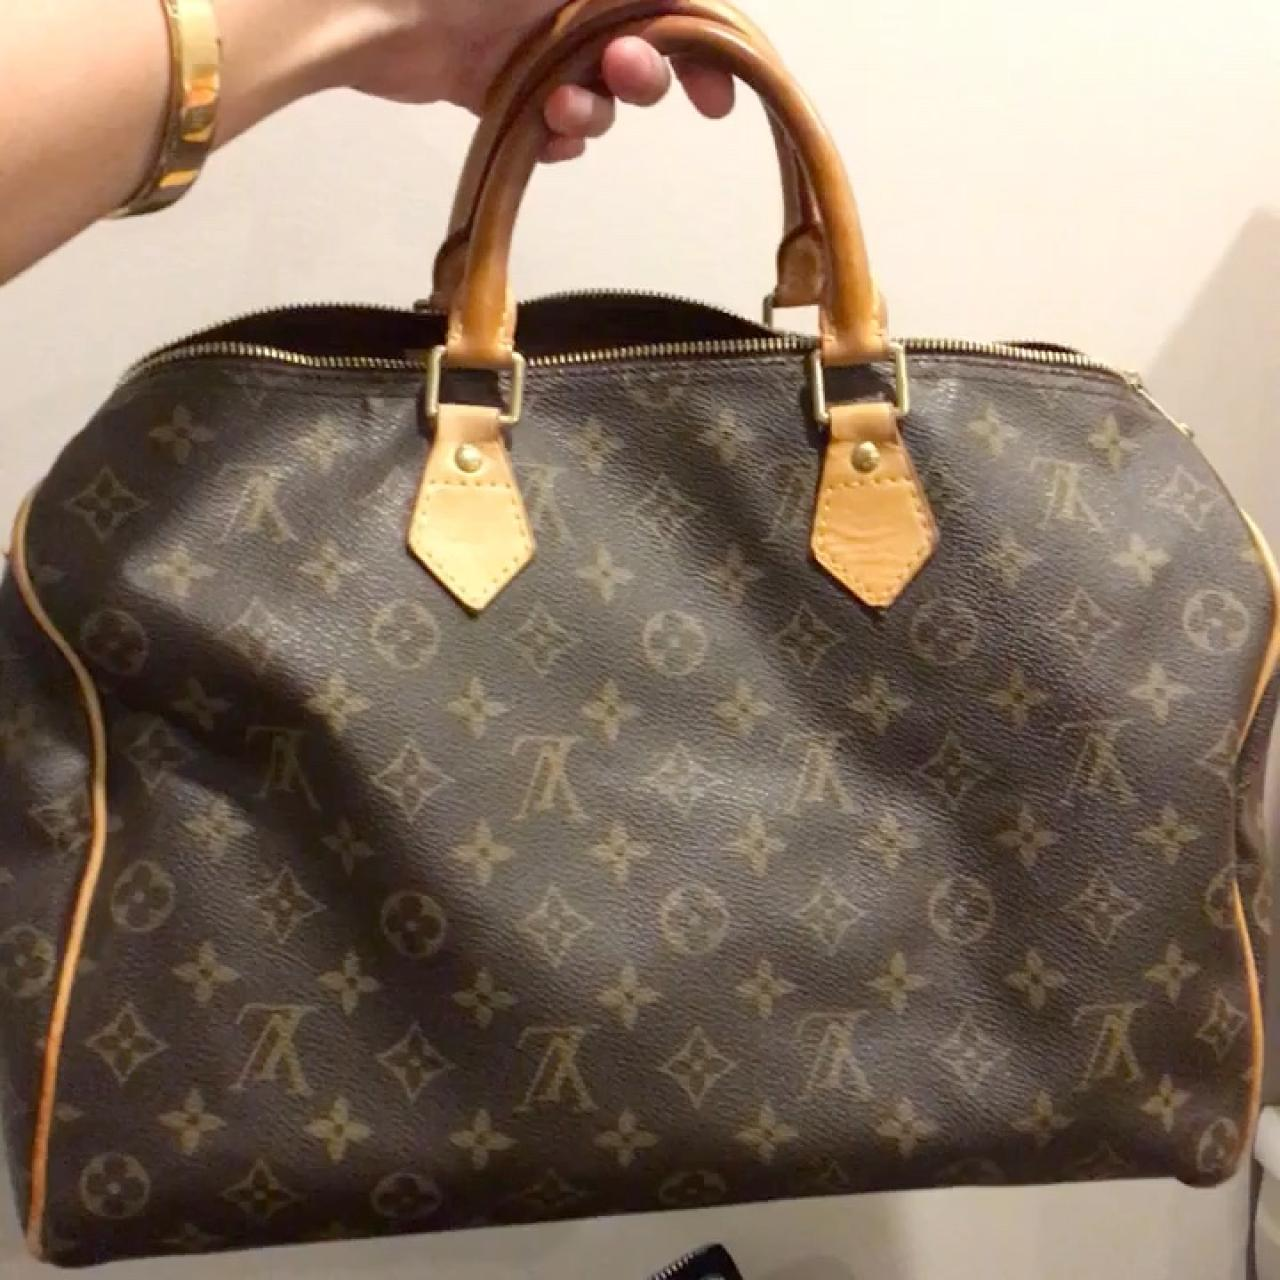 9b3d6194a825 Authentic used Louis Vuitton monogram Speedy 35. Bought in - Depop